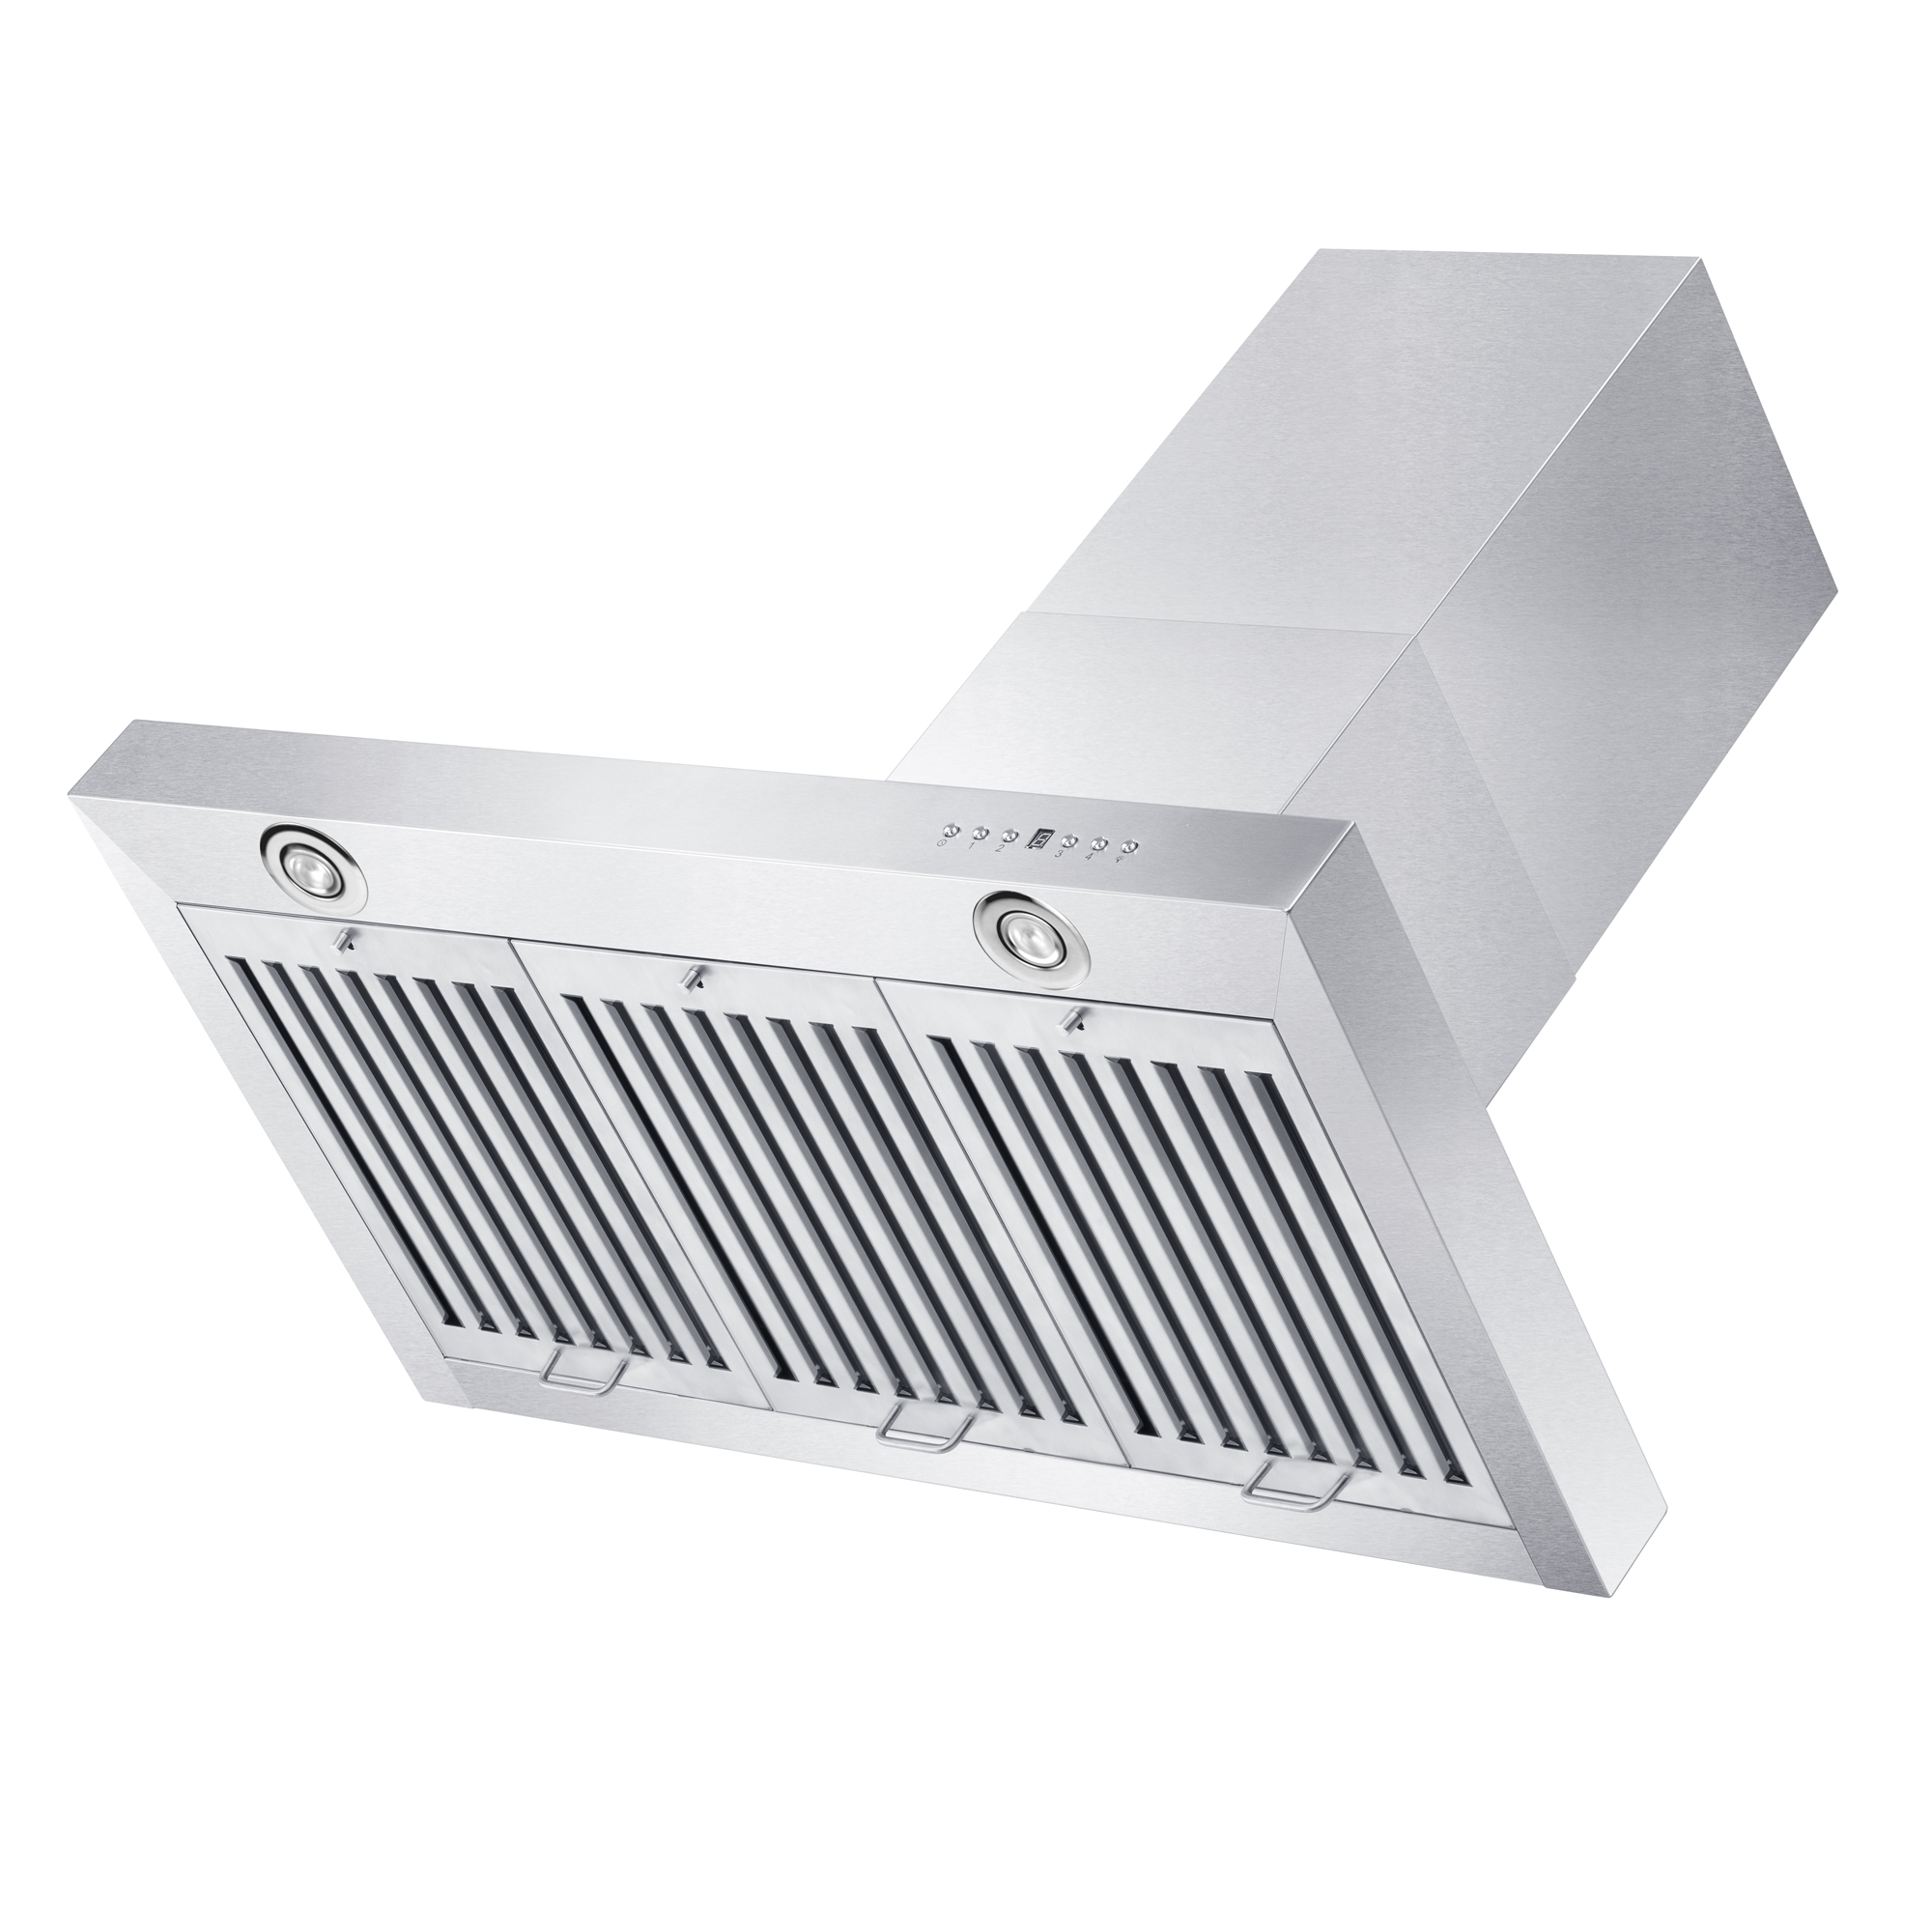 zline-stainless-steel-wall-mounted-range-hood-KE-new-side-under.jpg